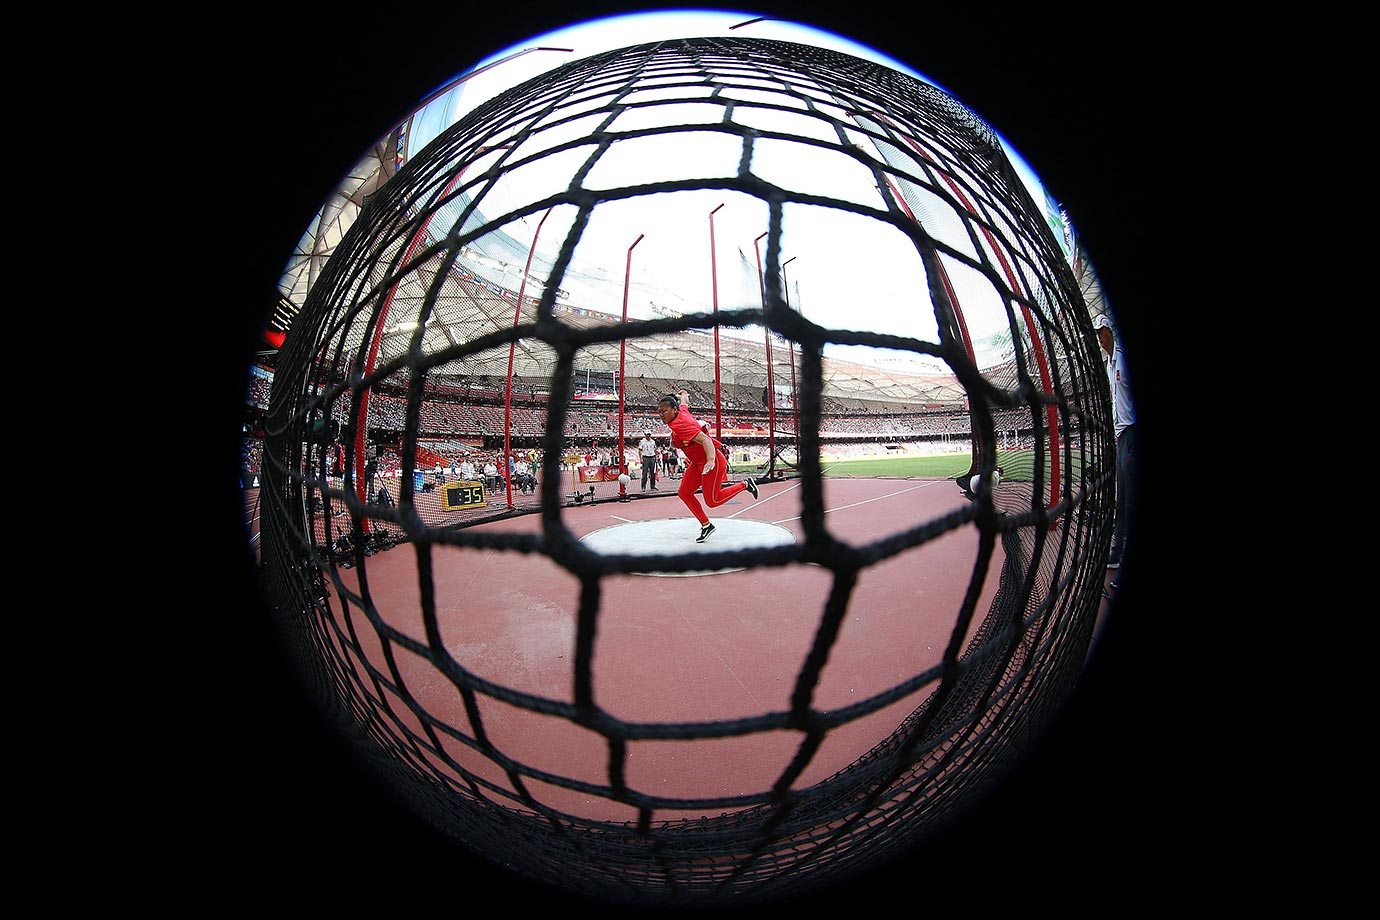 Su Xinyue competes in the women's discus throw at the 2015 IAAF World Championships.